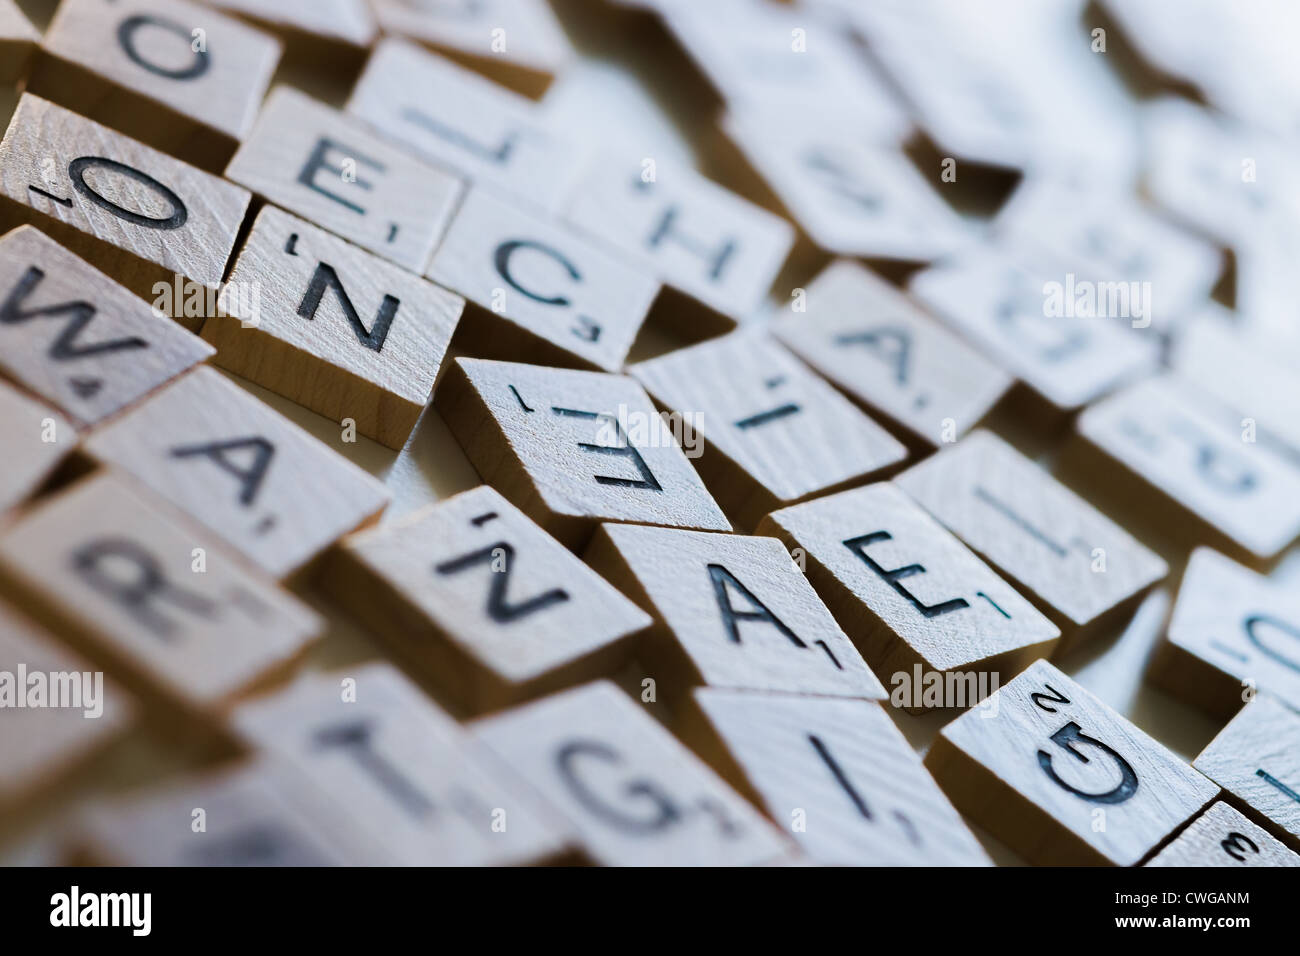 mixed scrabble letters